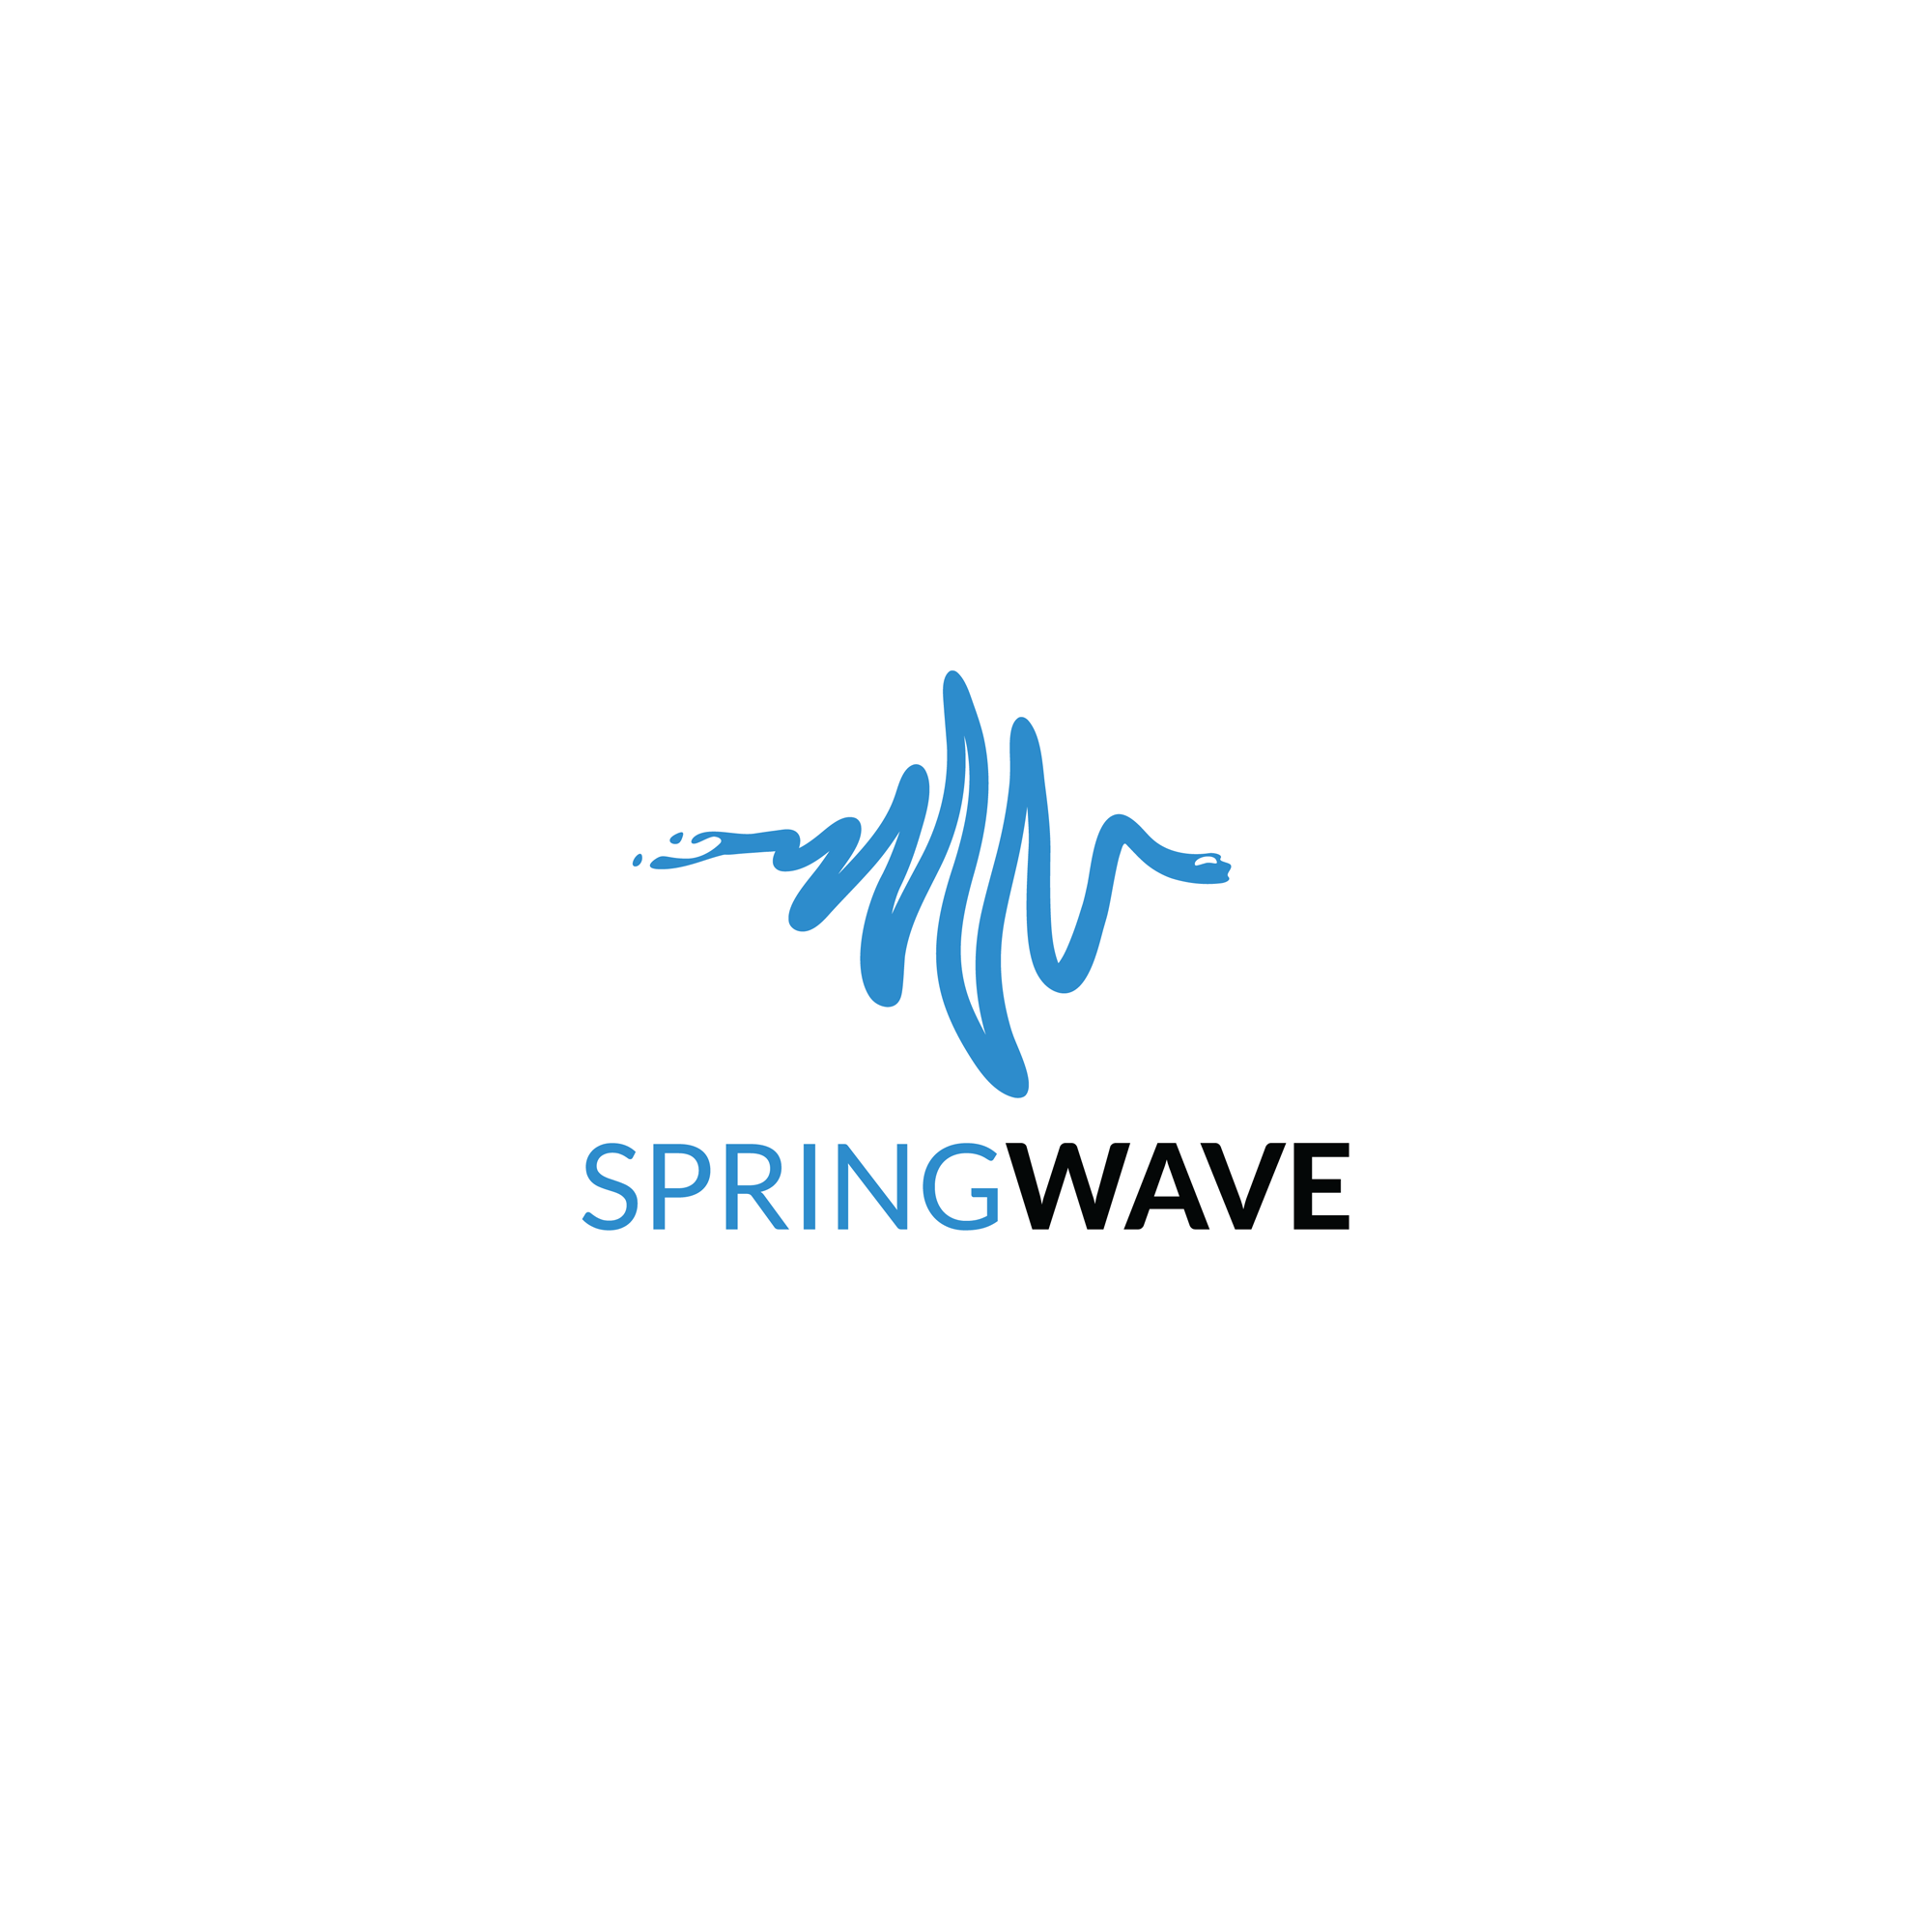 SpringWave logo featured